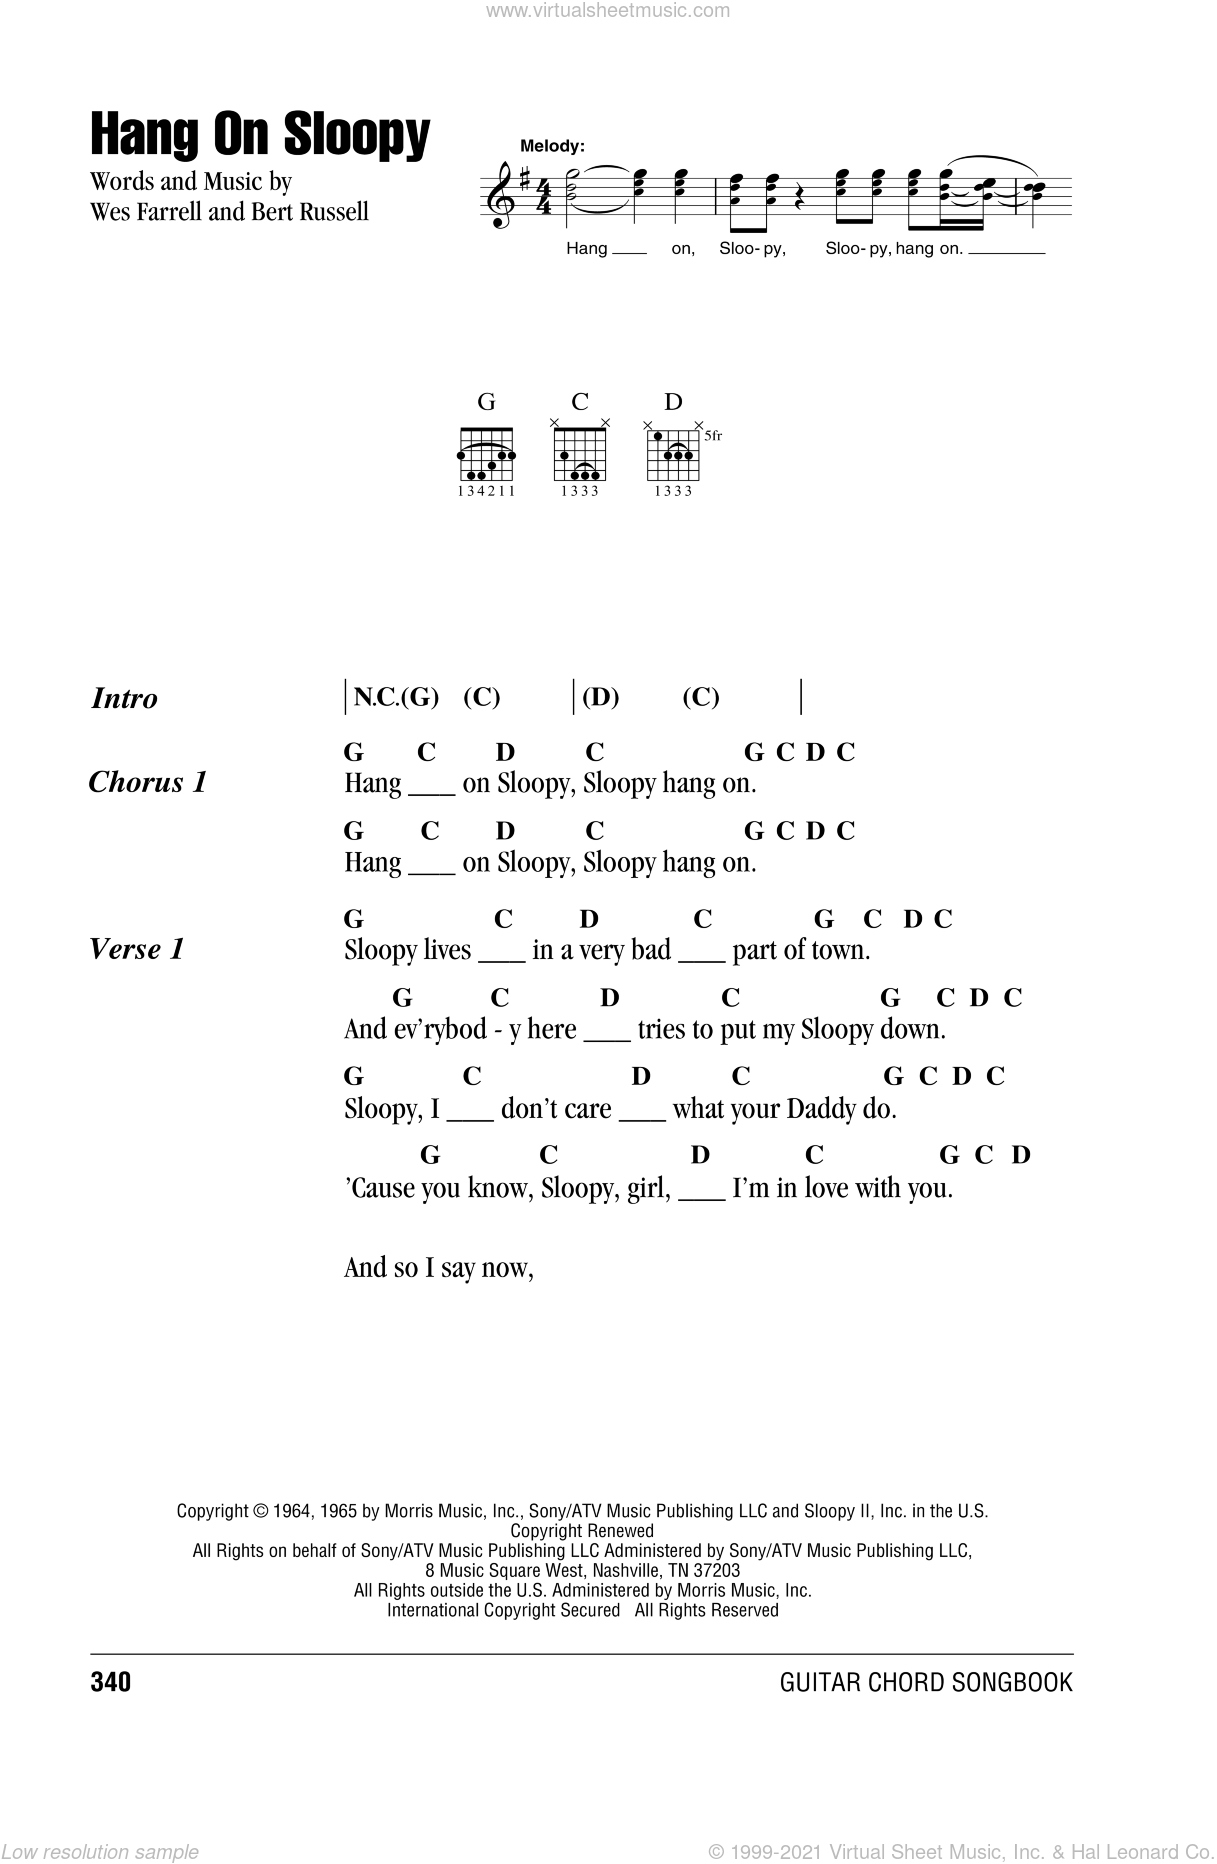 Hang On Sloopy sheet music for guitar (chords) by The McCoys, Bert Russell and Wes Farrell, intermediate skill level